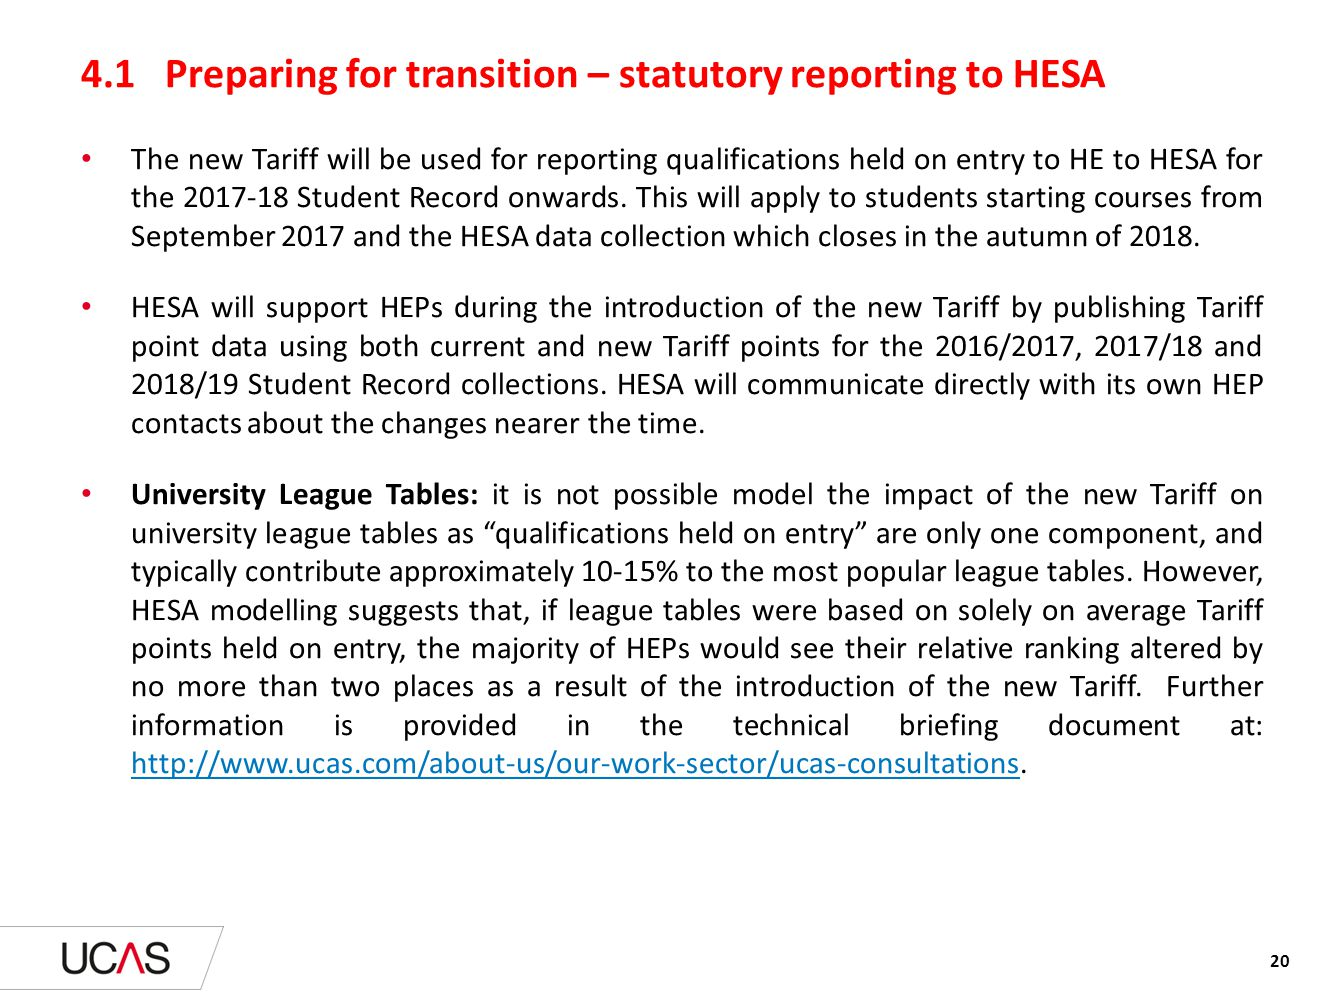 4.1 Preparing for transition – statutory reporting to HESA